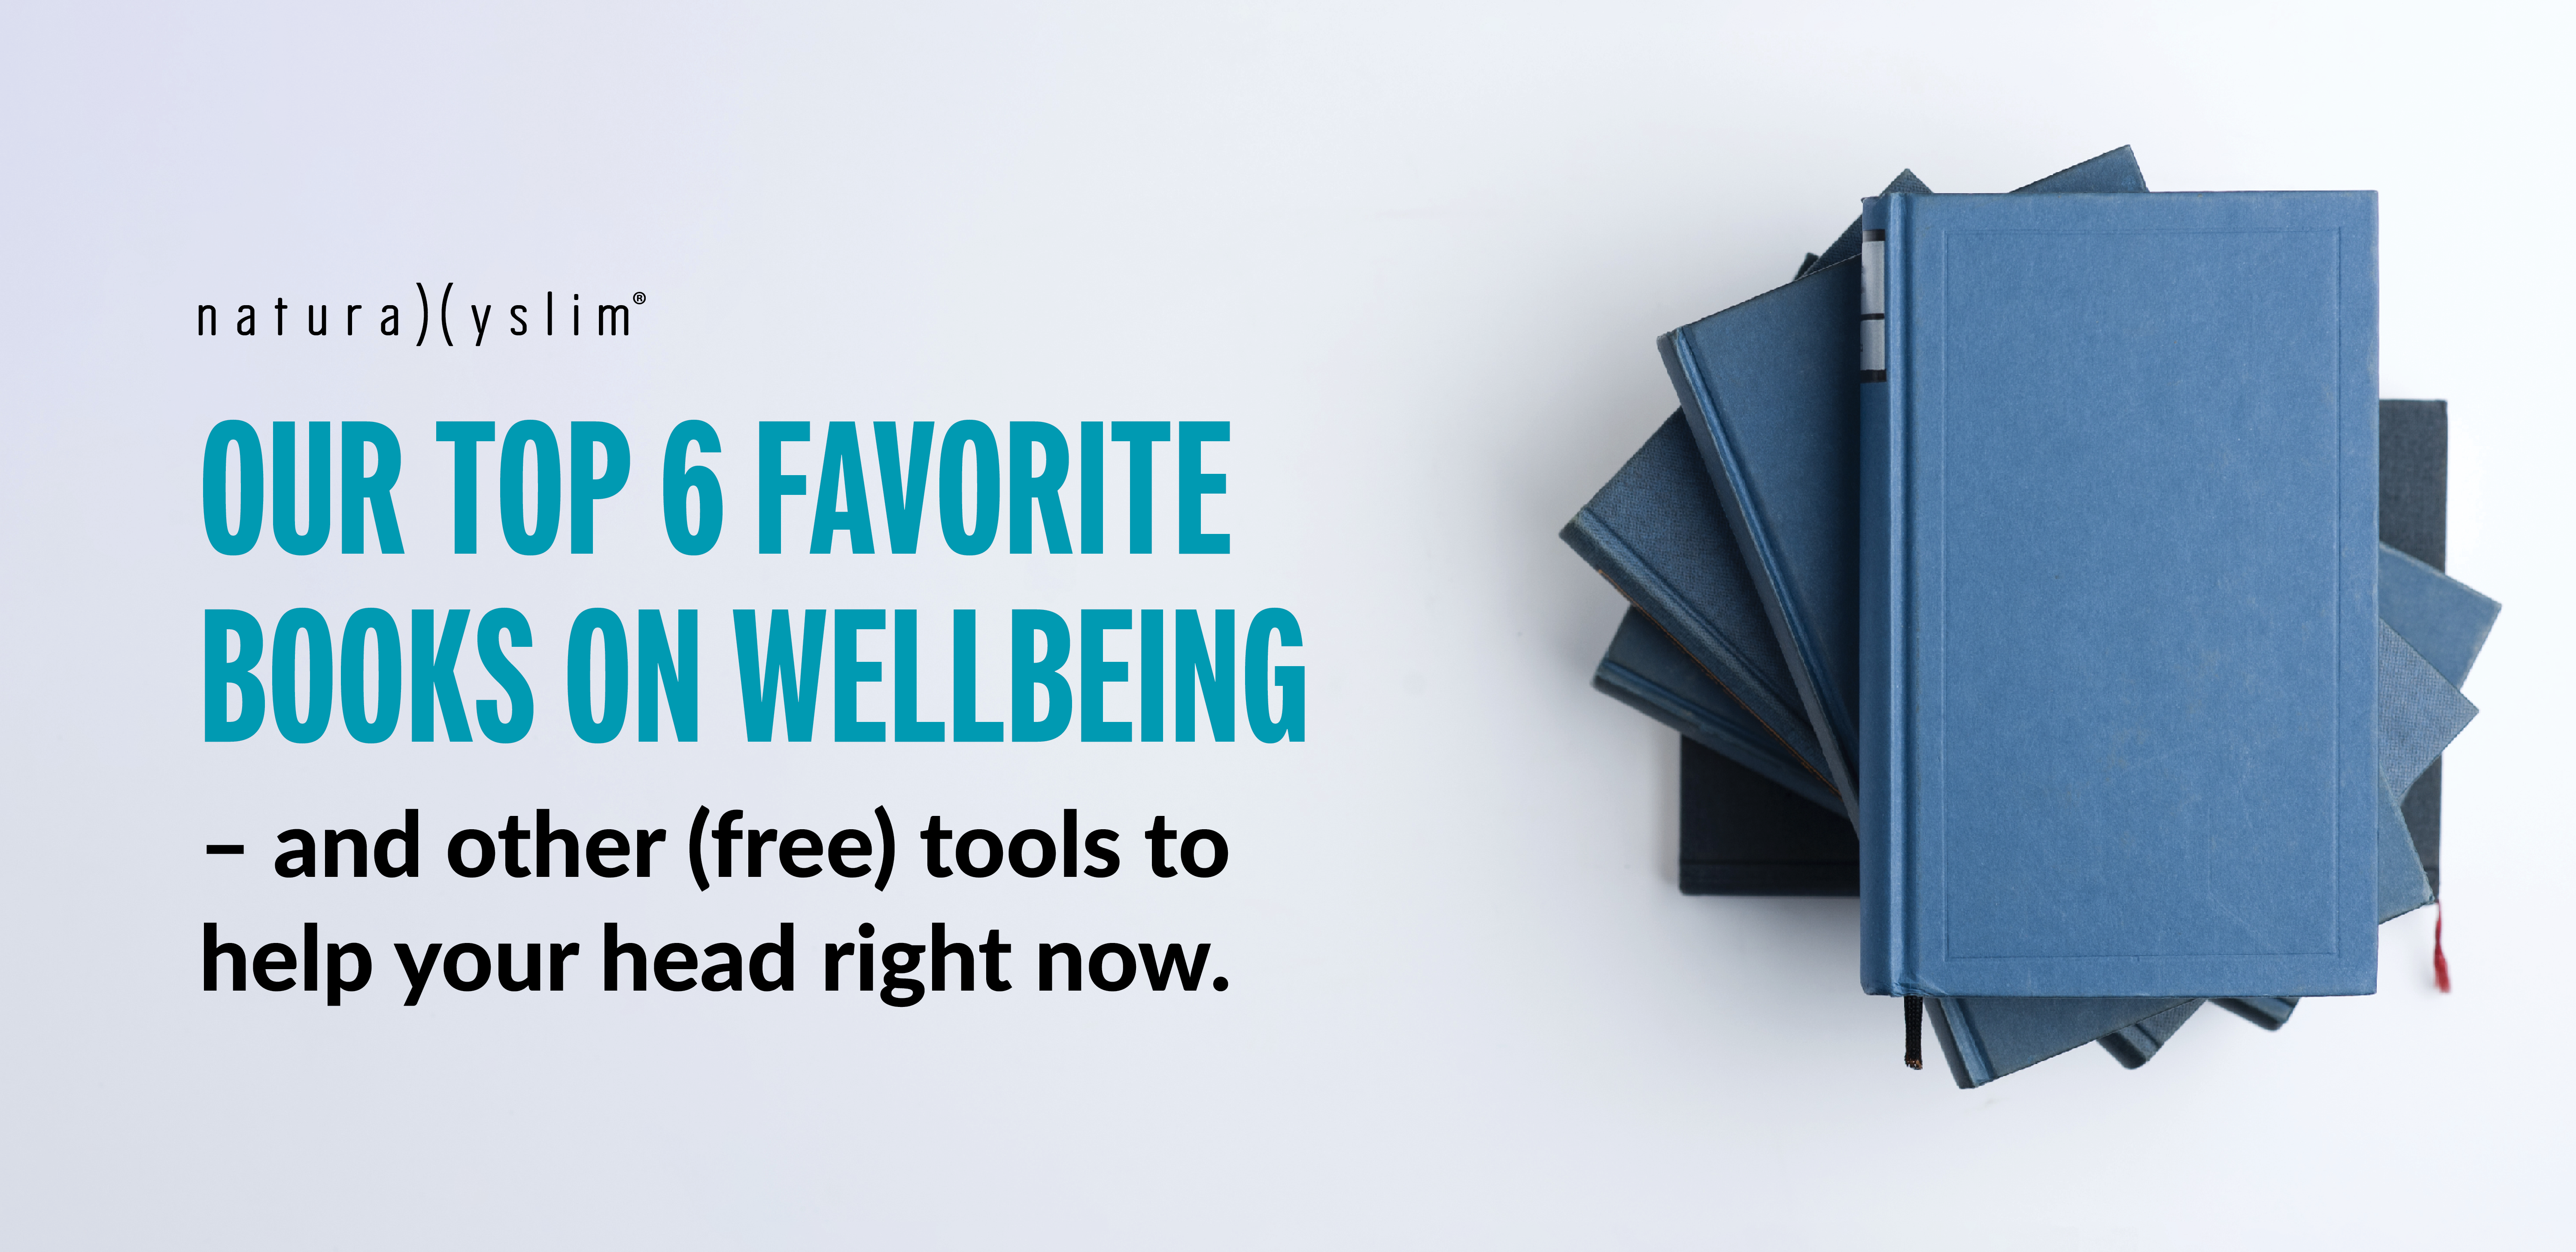 Our Top 6 Favorite Books on Wellbeing